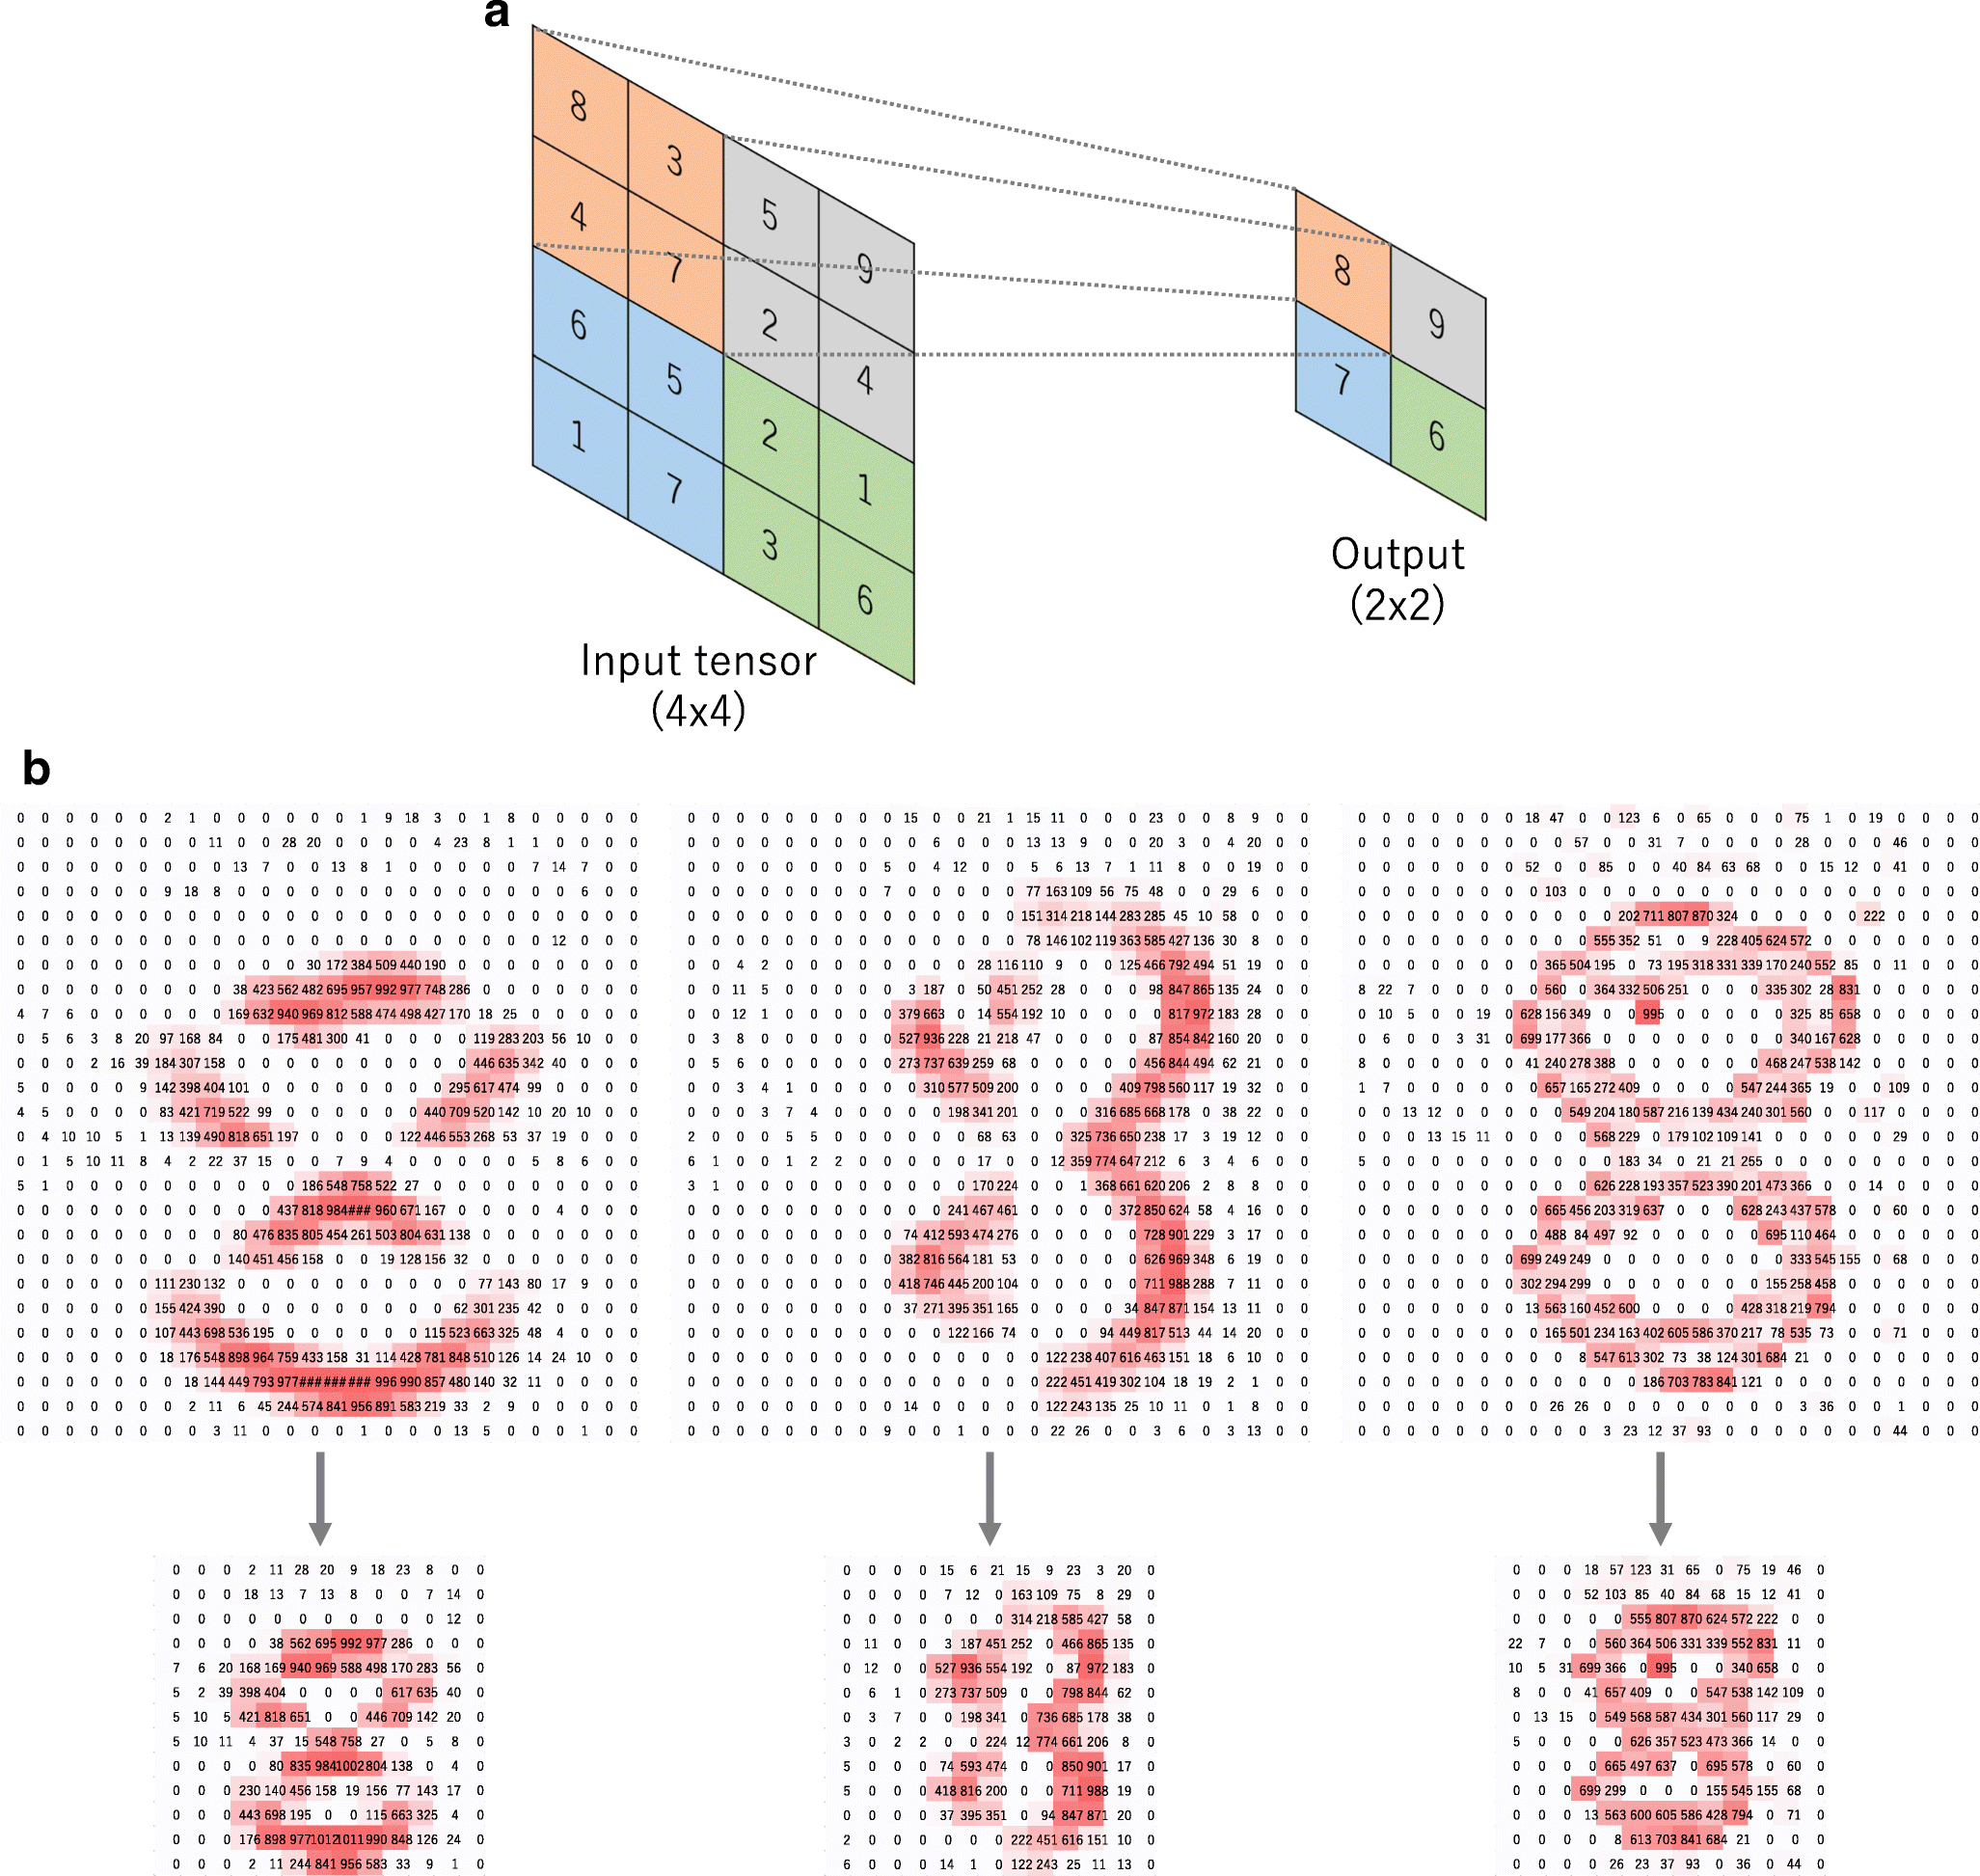 Convolutional neural networks: an overview and application